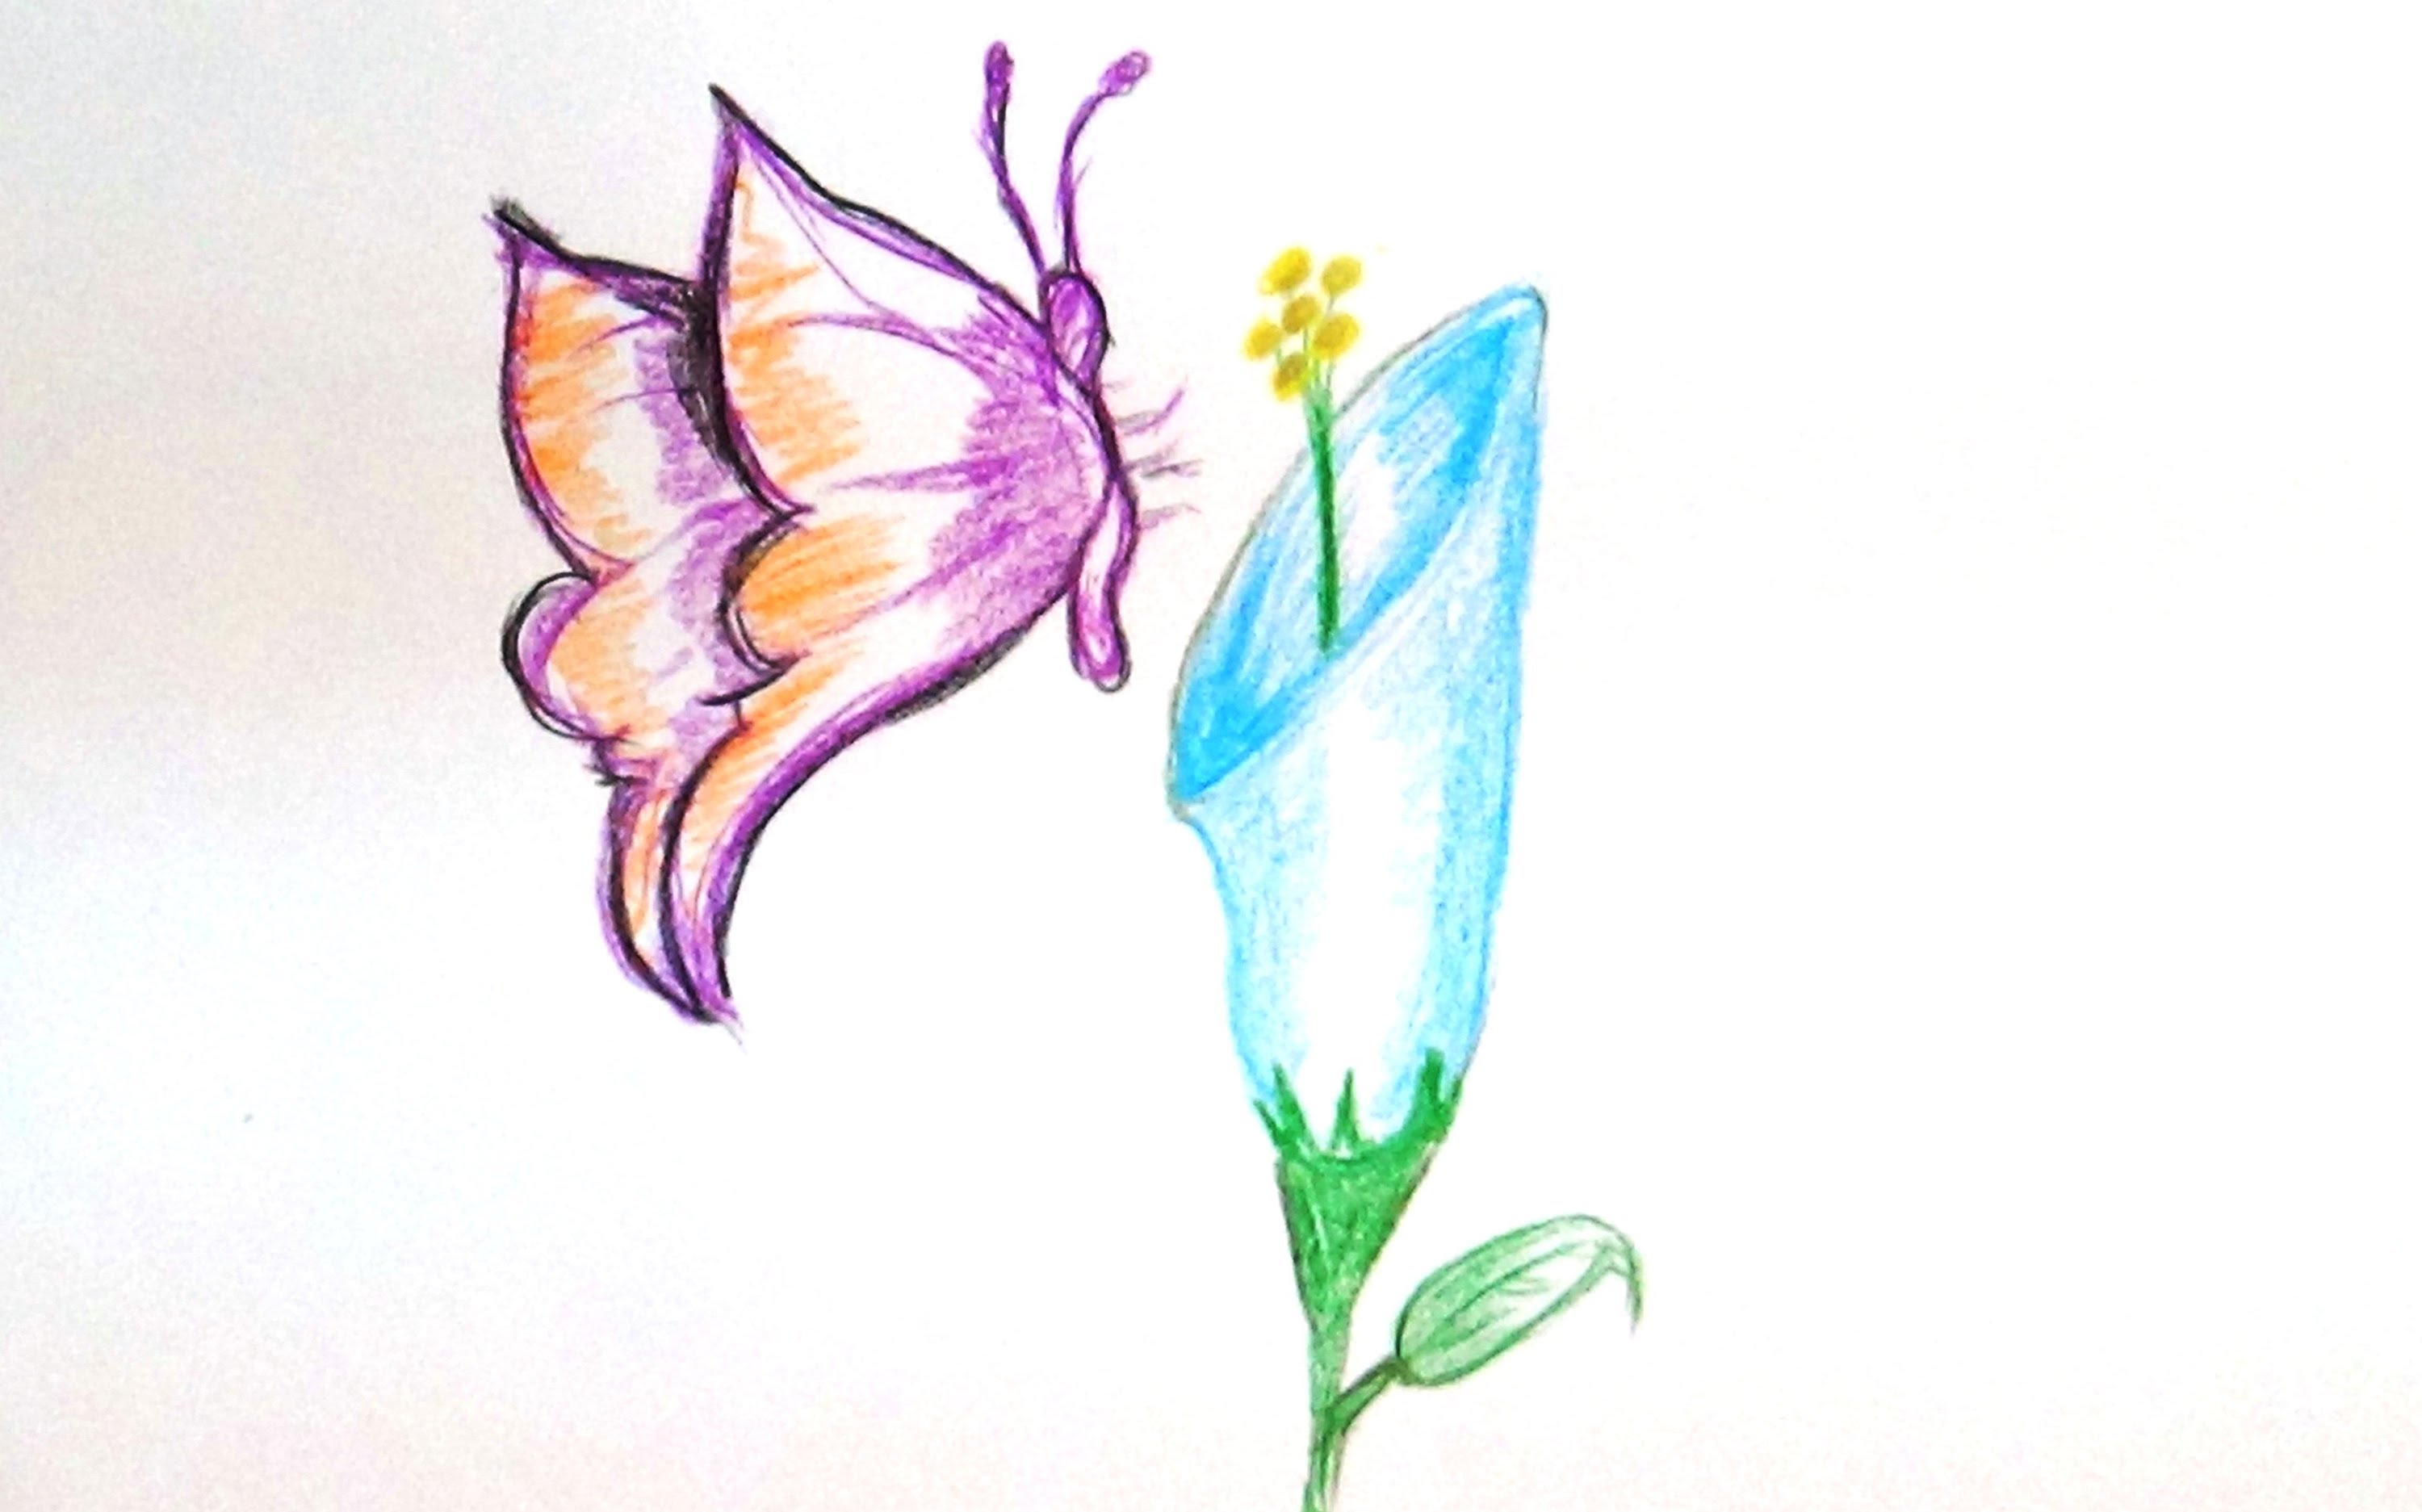 3000x1873 How To Draw A Butterfly Sucking Nectar Of A Flower